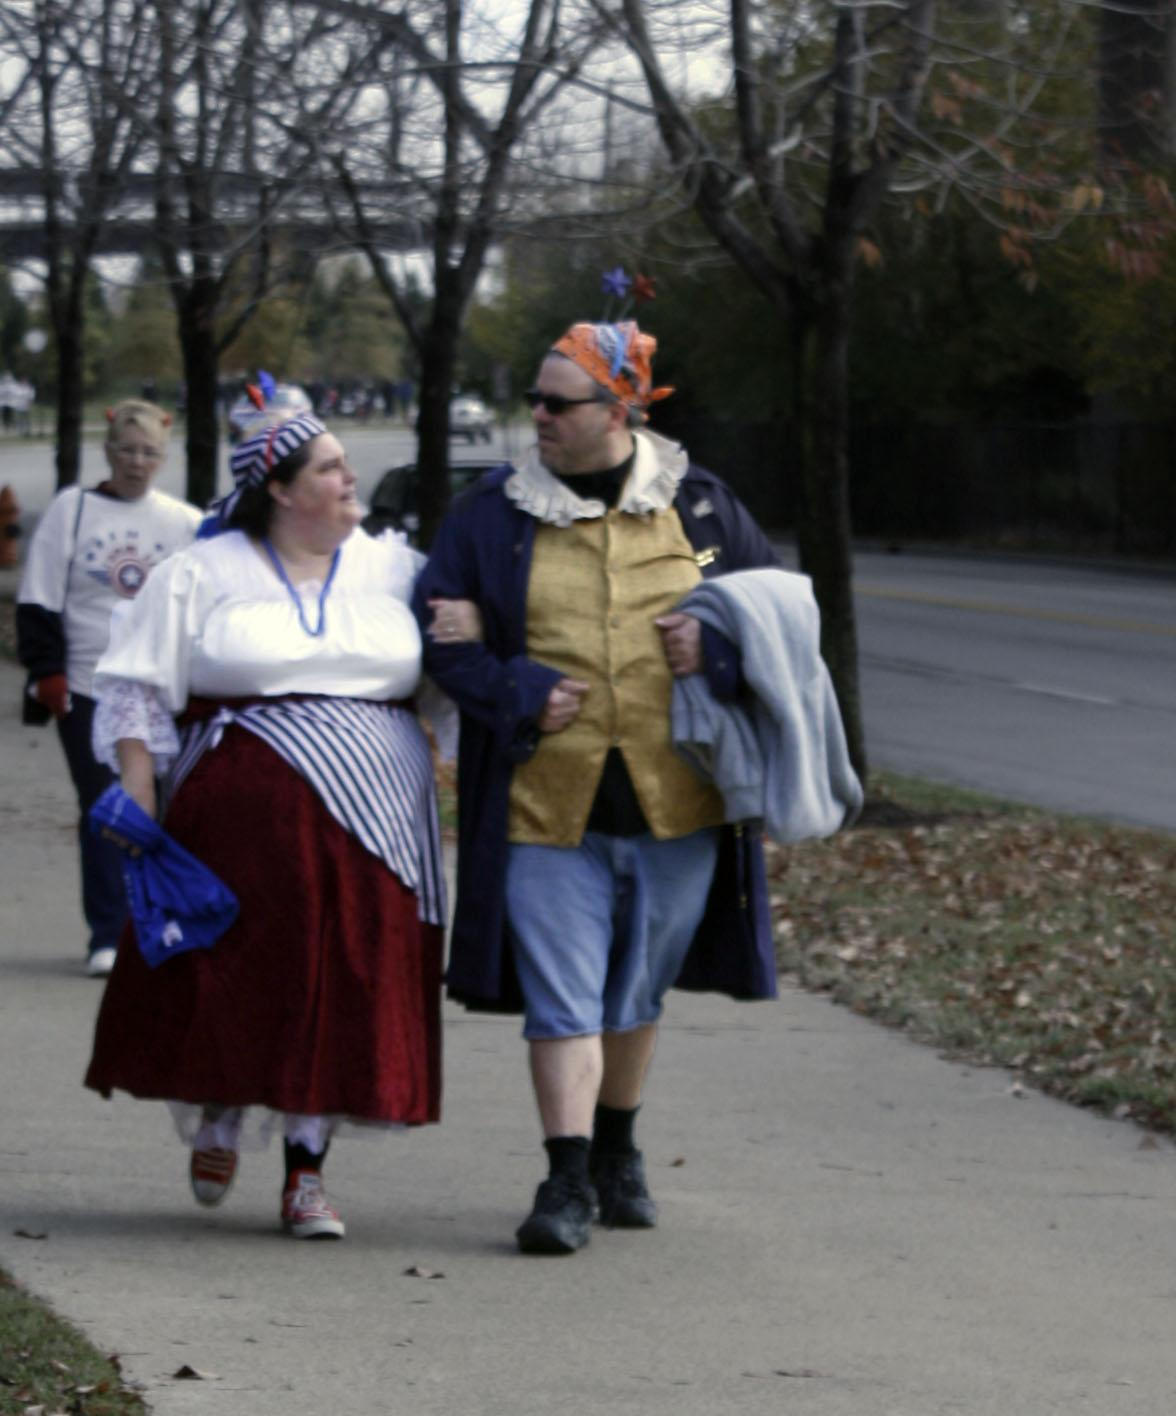 One couple decided to flaunt their Halloween spirit and dress up as pirates.